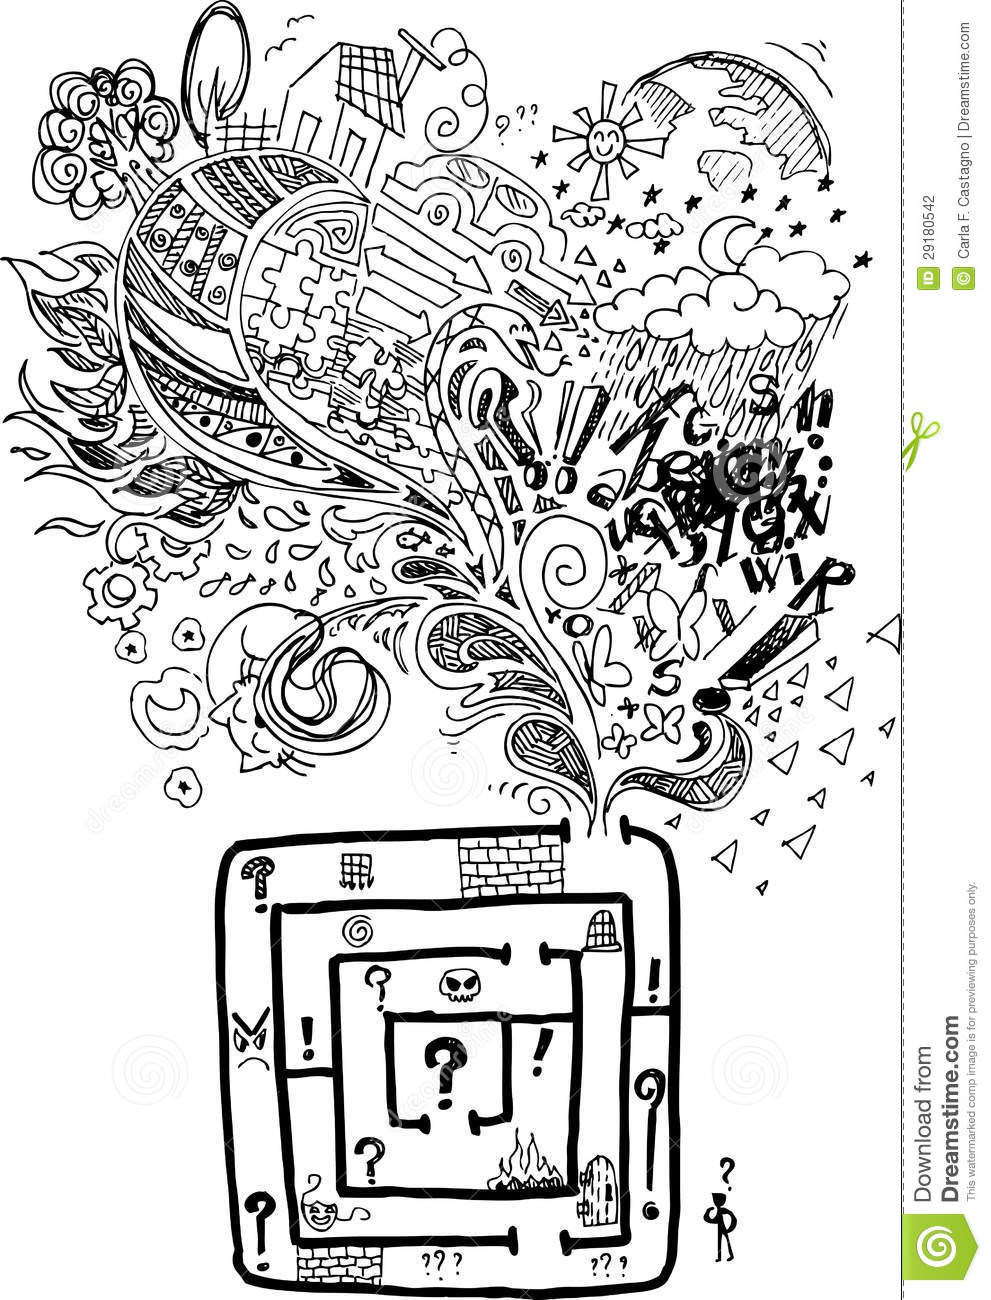 Sketchy Doodle Confused Maze Vector Stock Photography